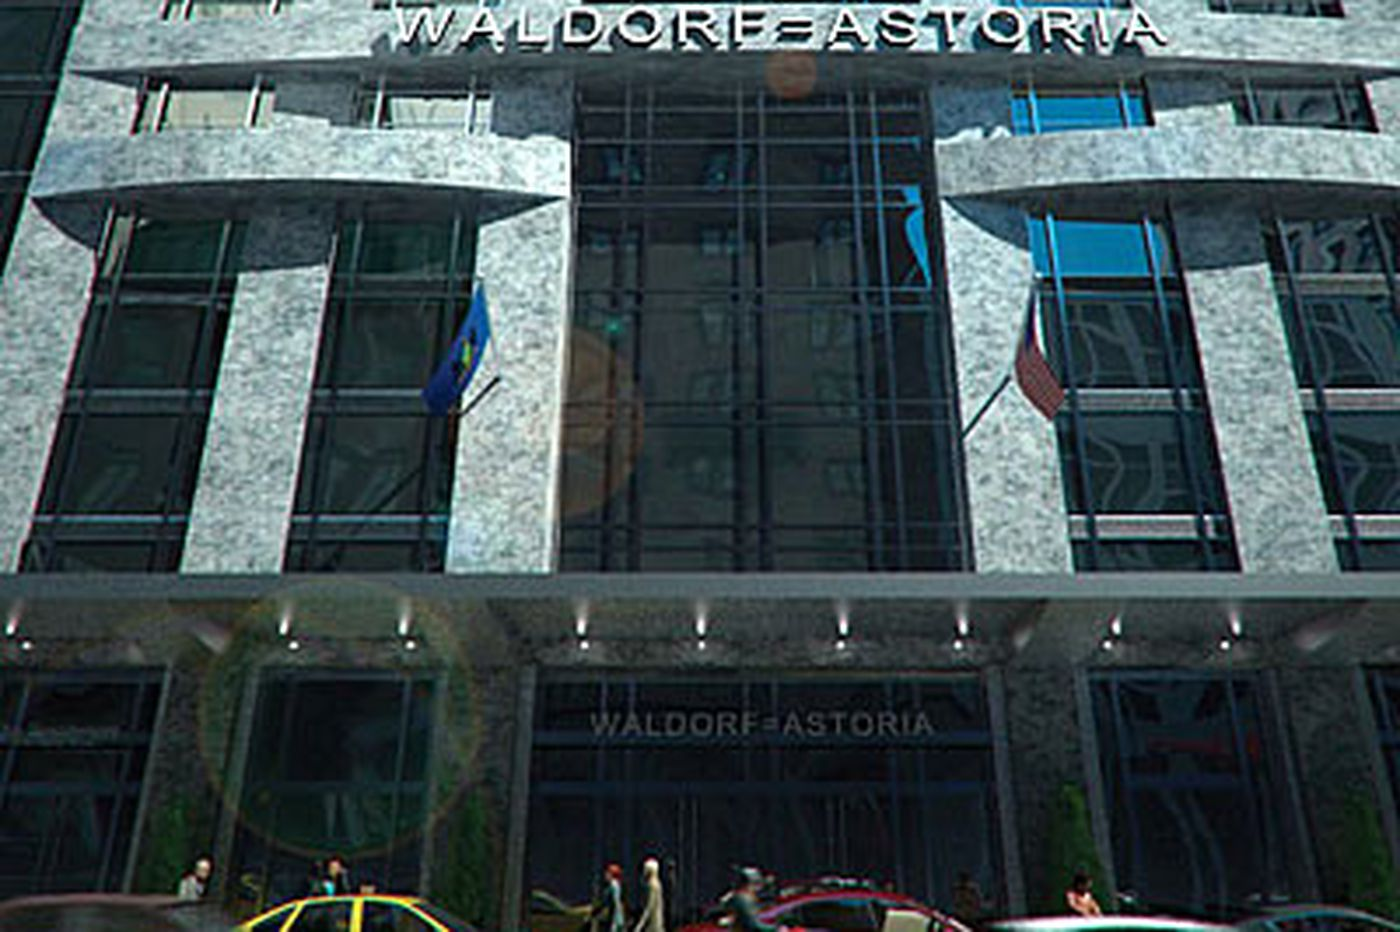 A Waldorf is planned for Center City